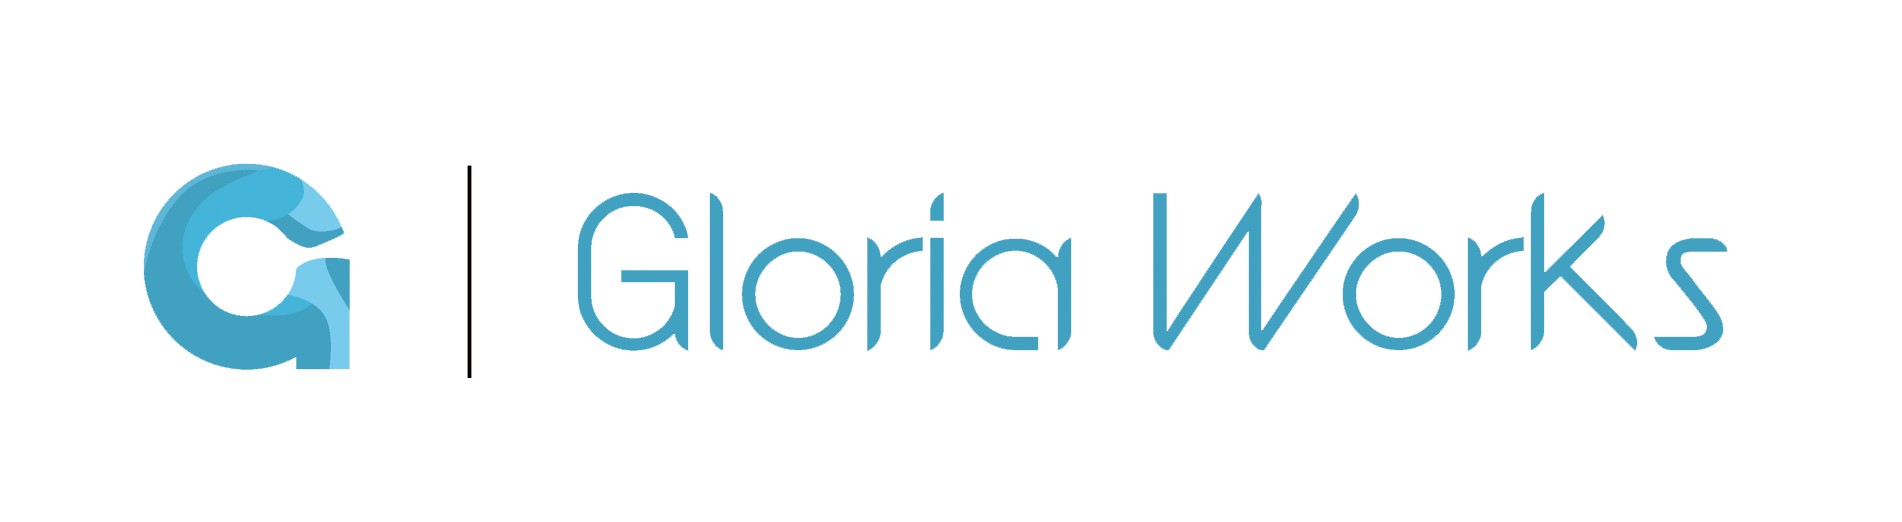 gloria works_logo.png